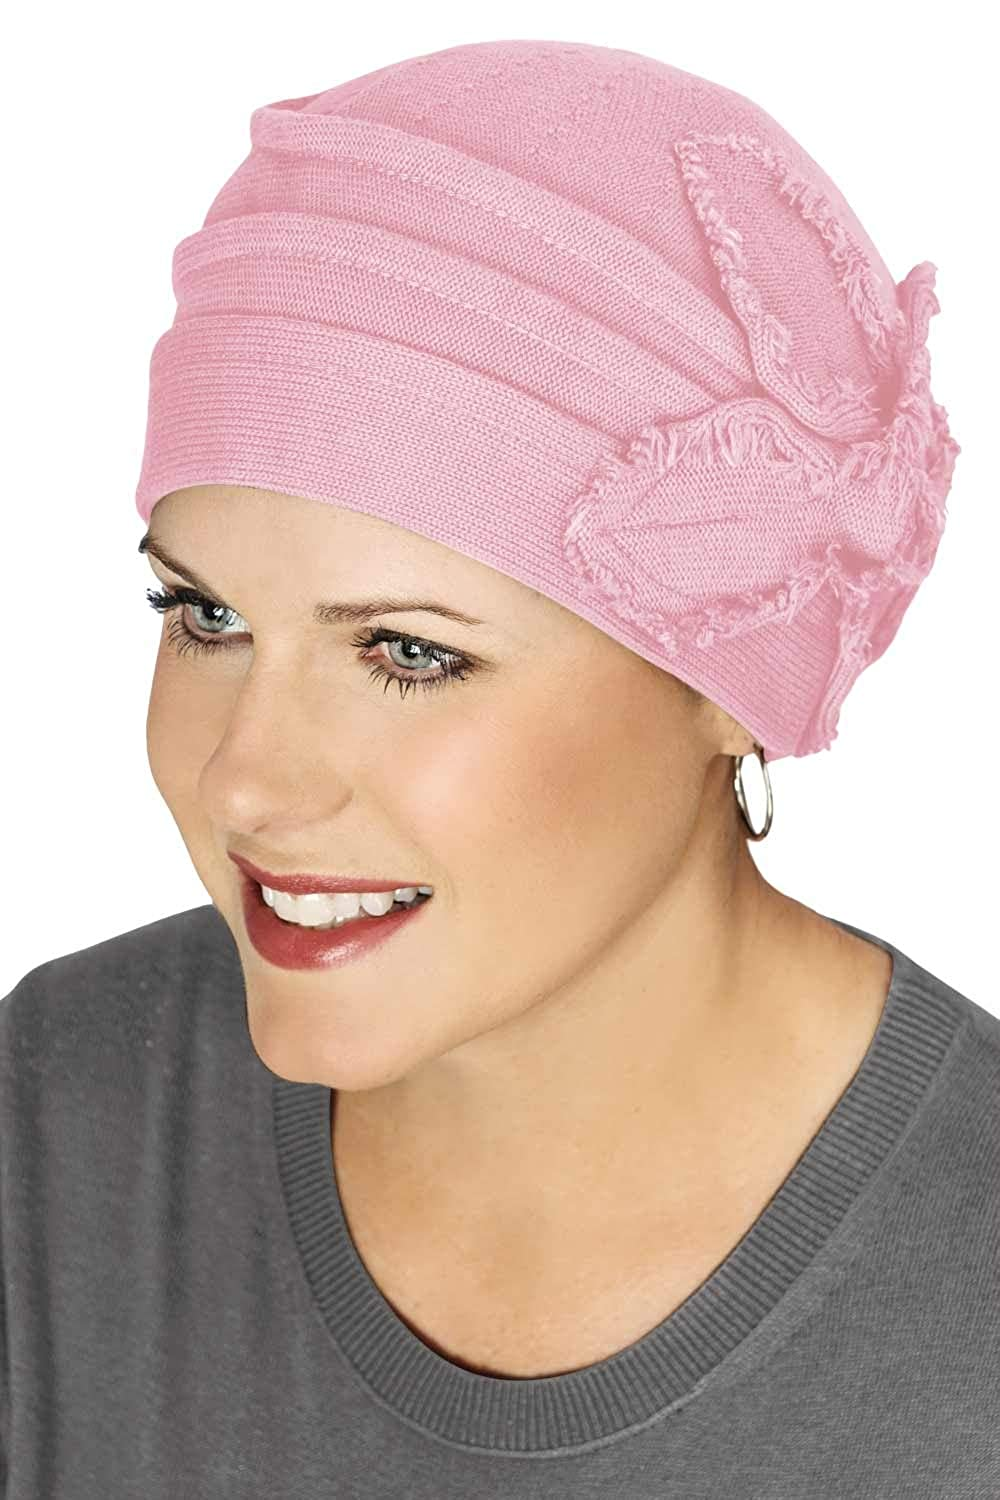 81e46b8a7 Butterfly Fringe Beanie Hats for Cancer Patients -Chemo Hats for Women